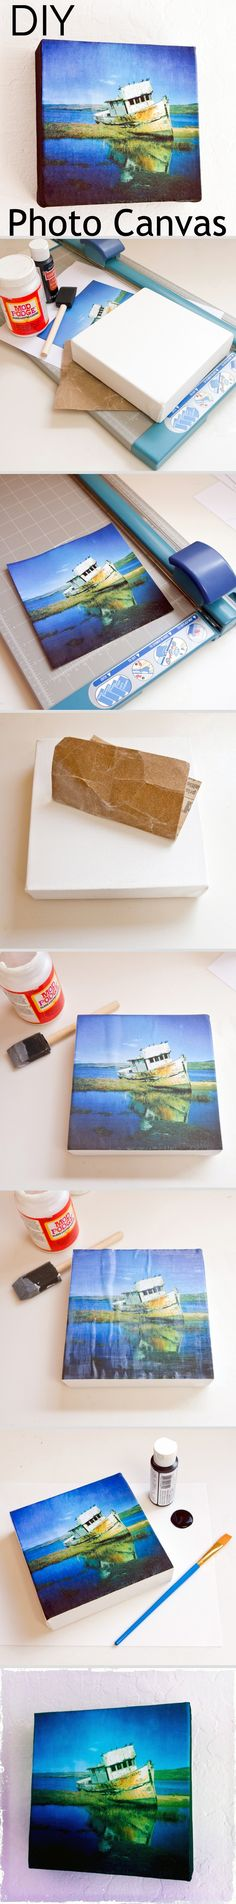 Make your own photo canvas prints to save money. photos are great for this! Im gonna do this with some engagement pics